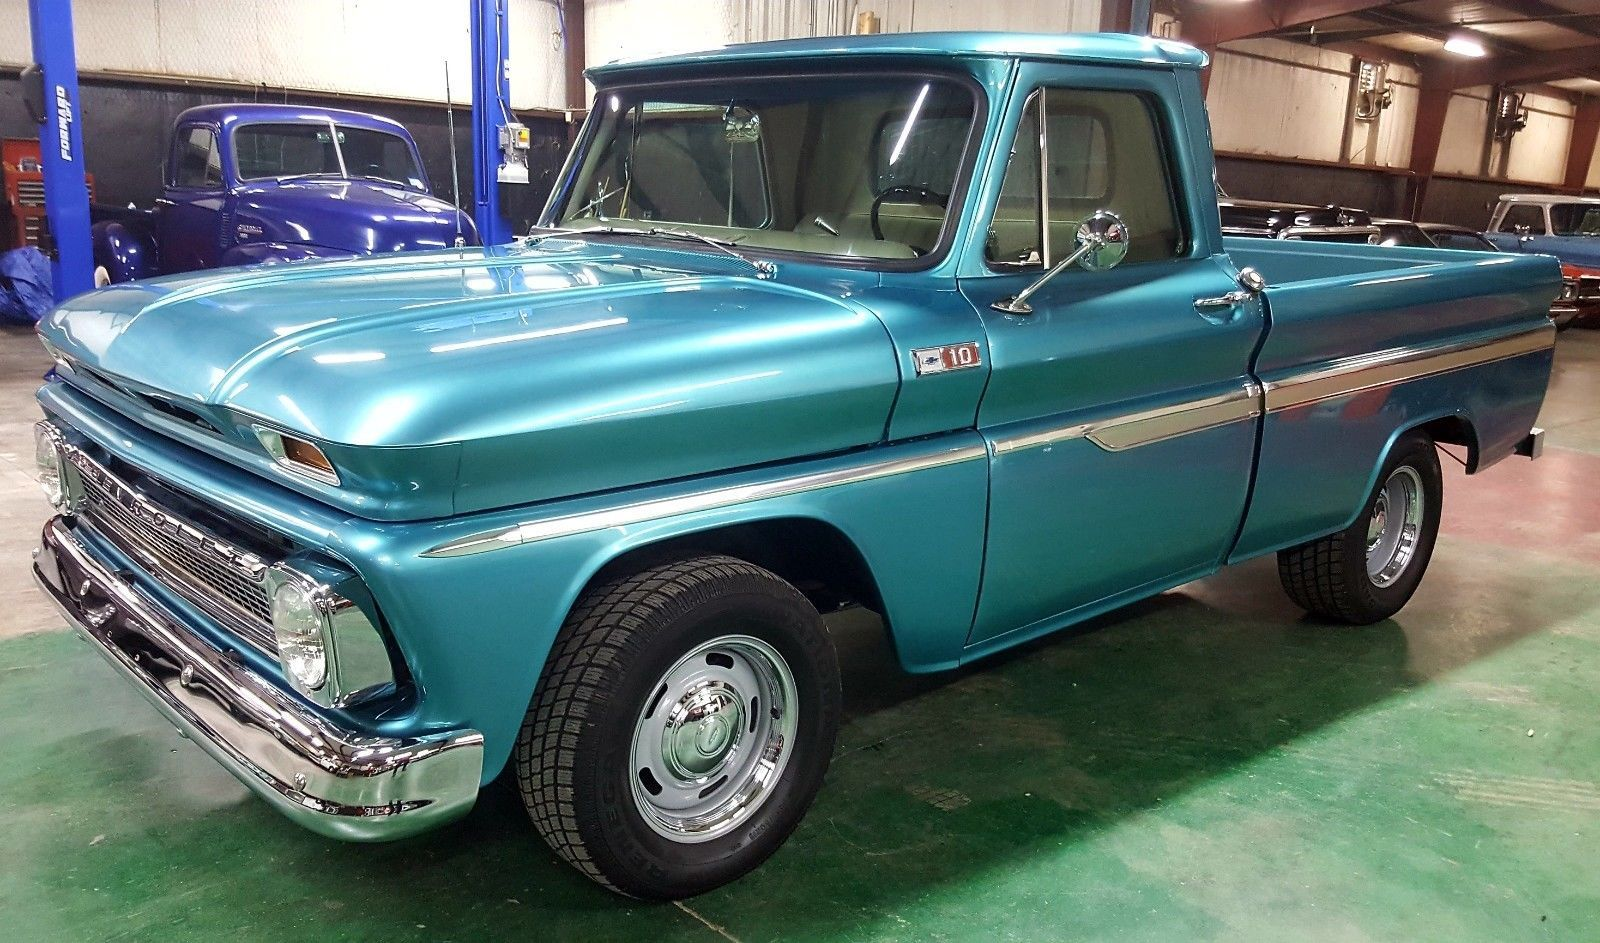 Cool Amazing 1965 Chevrolet C-10 Nice Truck Restored 1965 Chevrolet ...